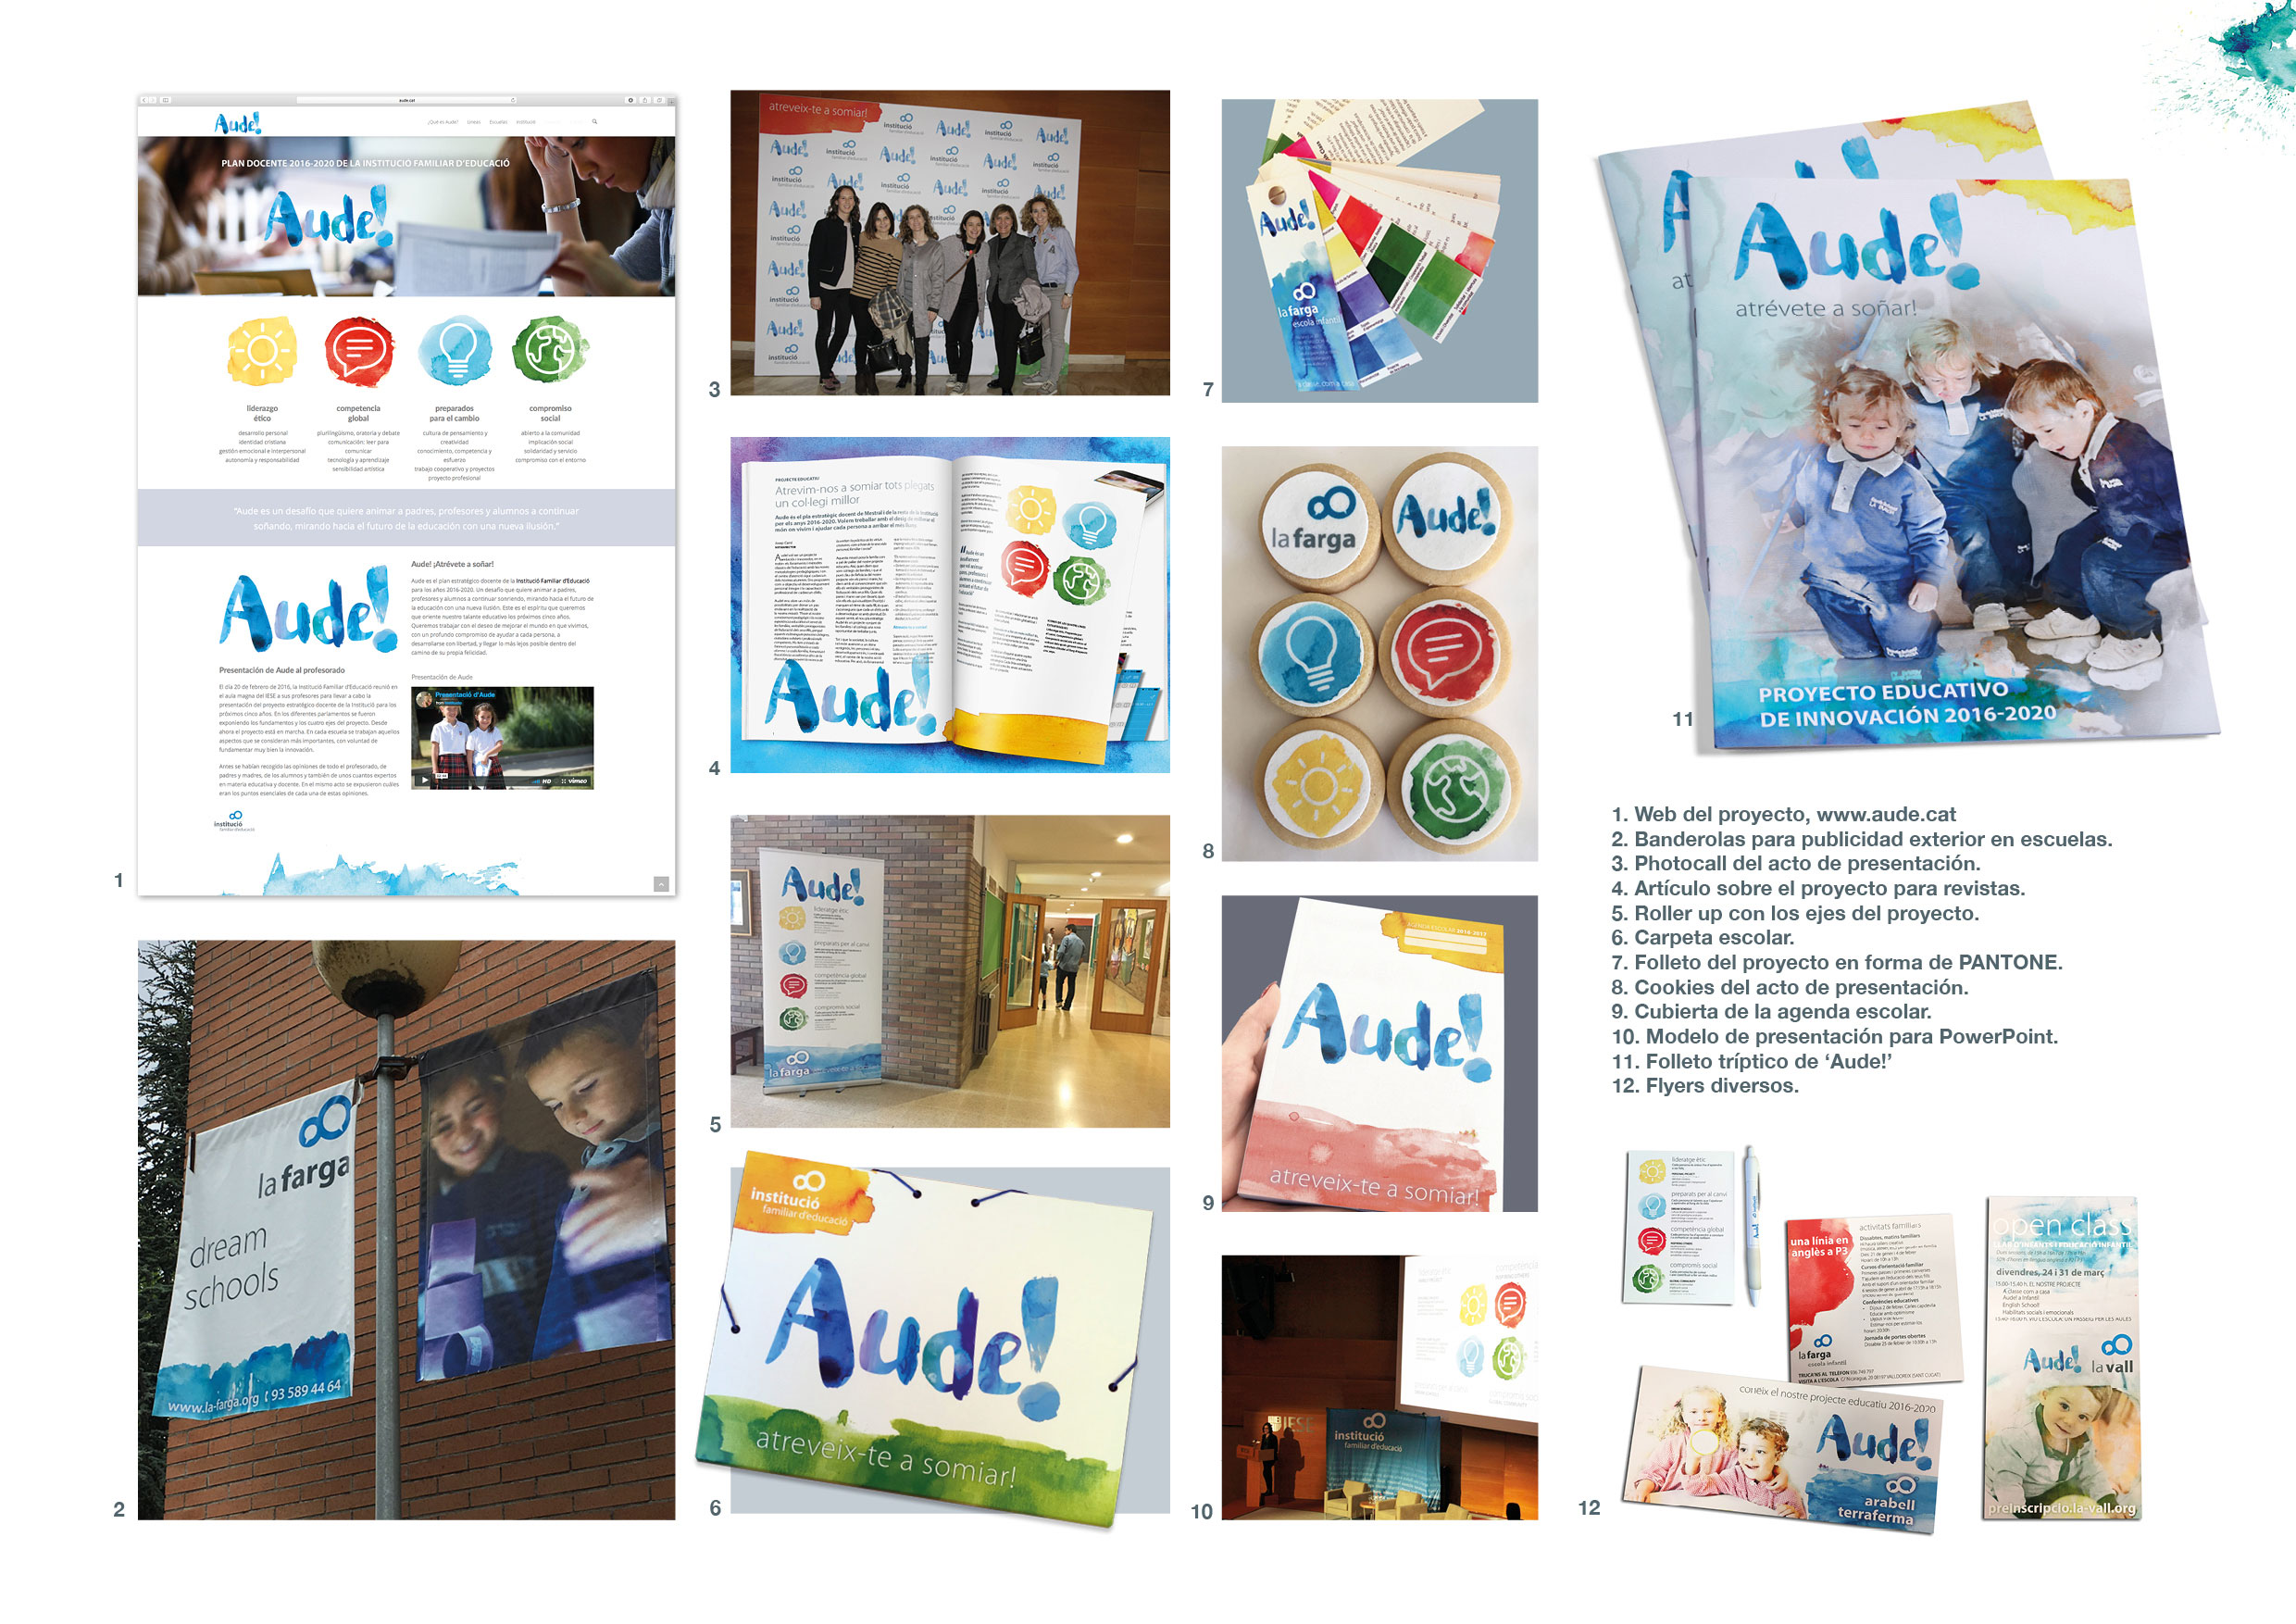 Aude! by Miquel Rossy - Creative Work - $i